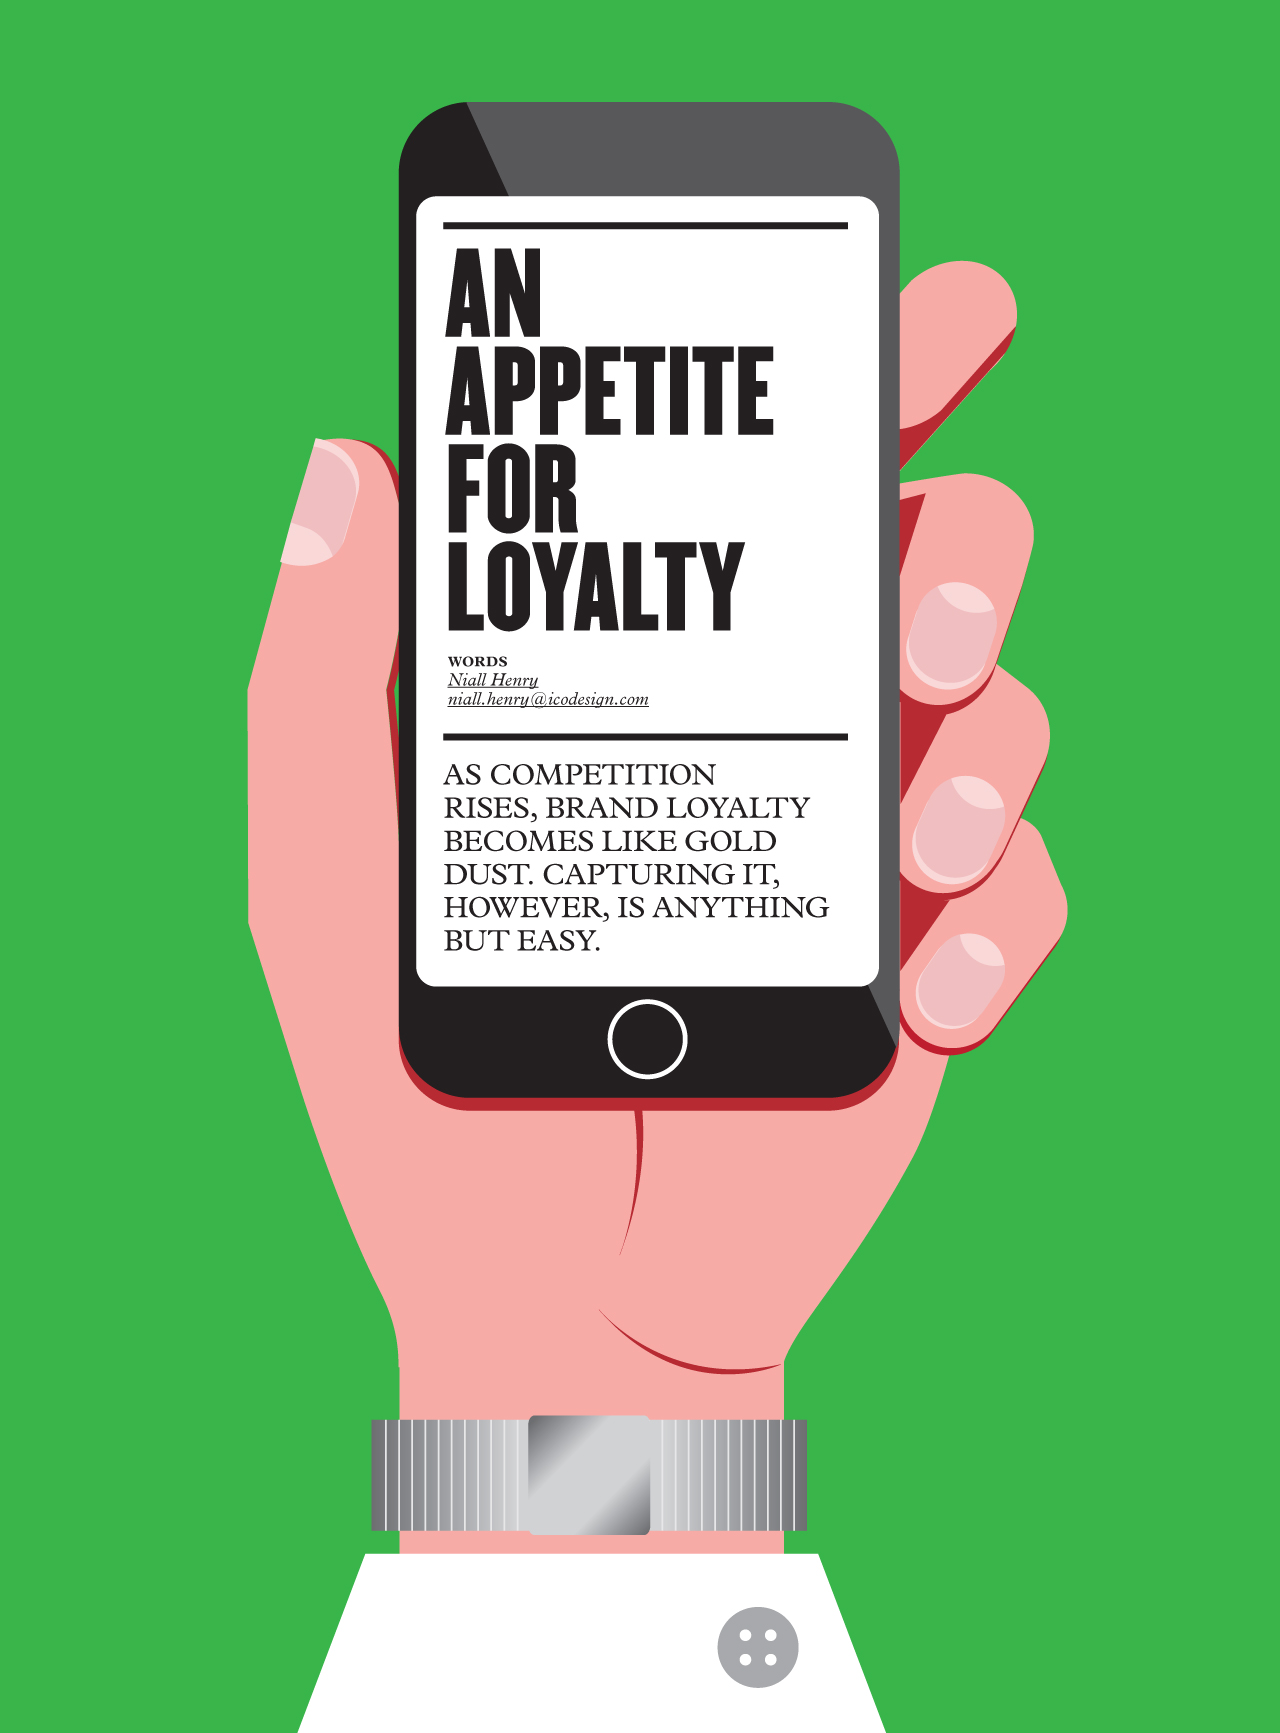 An appetite for loyalty